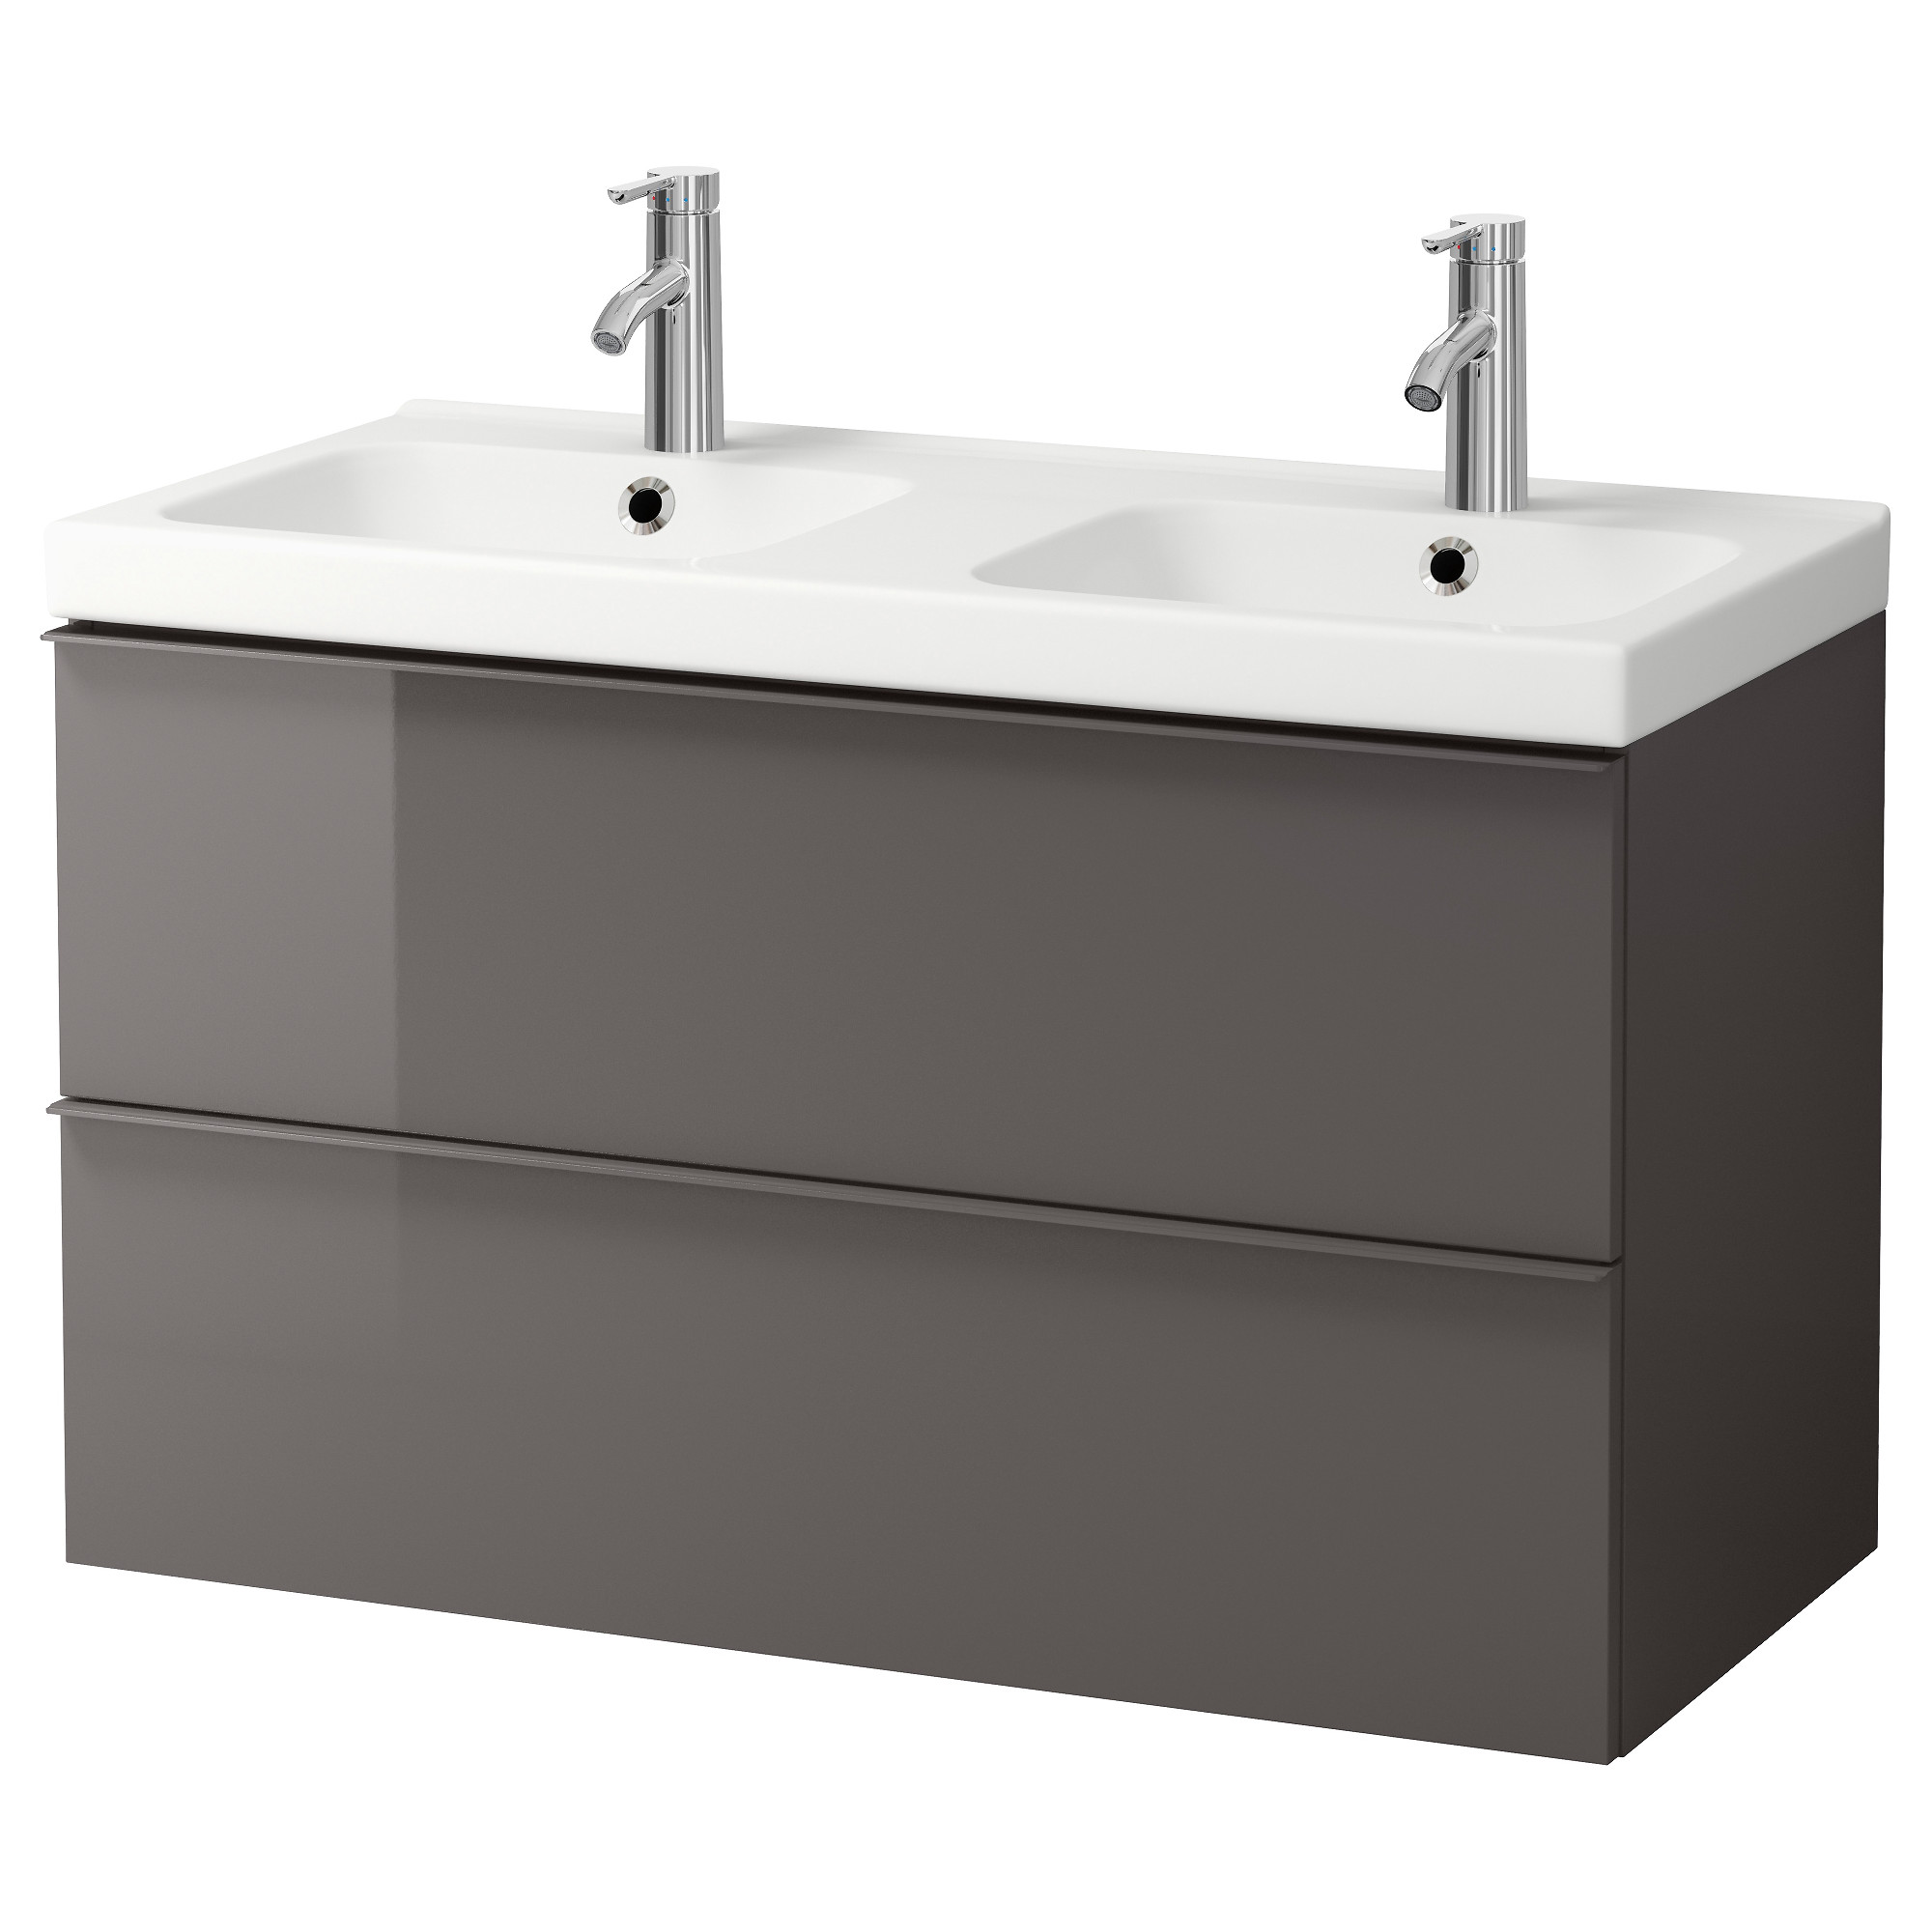 Morgon Odensvik Sink Cabinet With 2 Drawers Black Brown 39